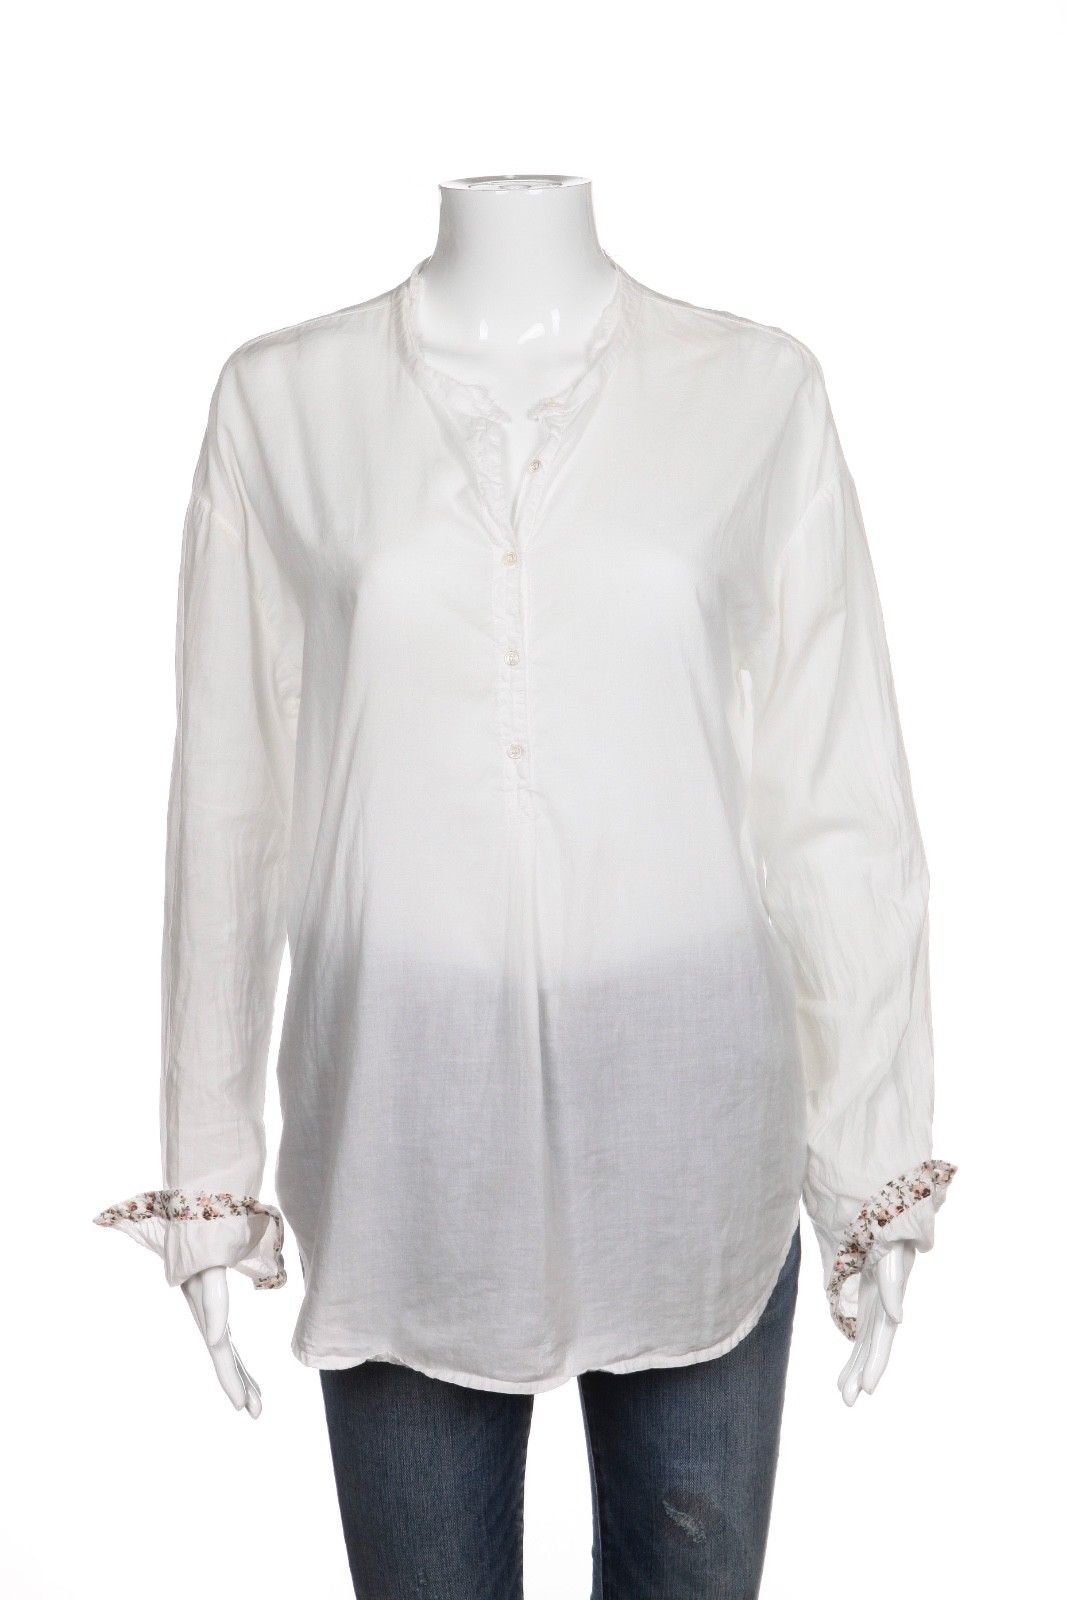 XIRENA Tunic Shirt With Floral Print Cuffs Size S